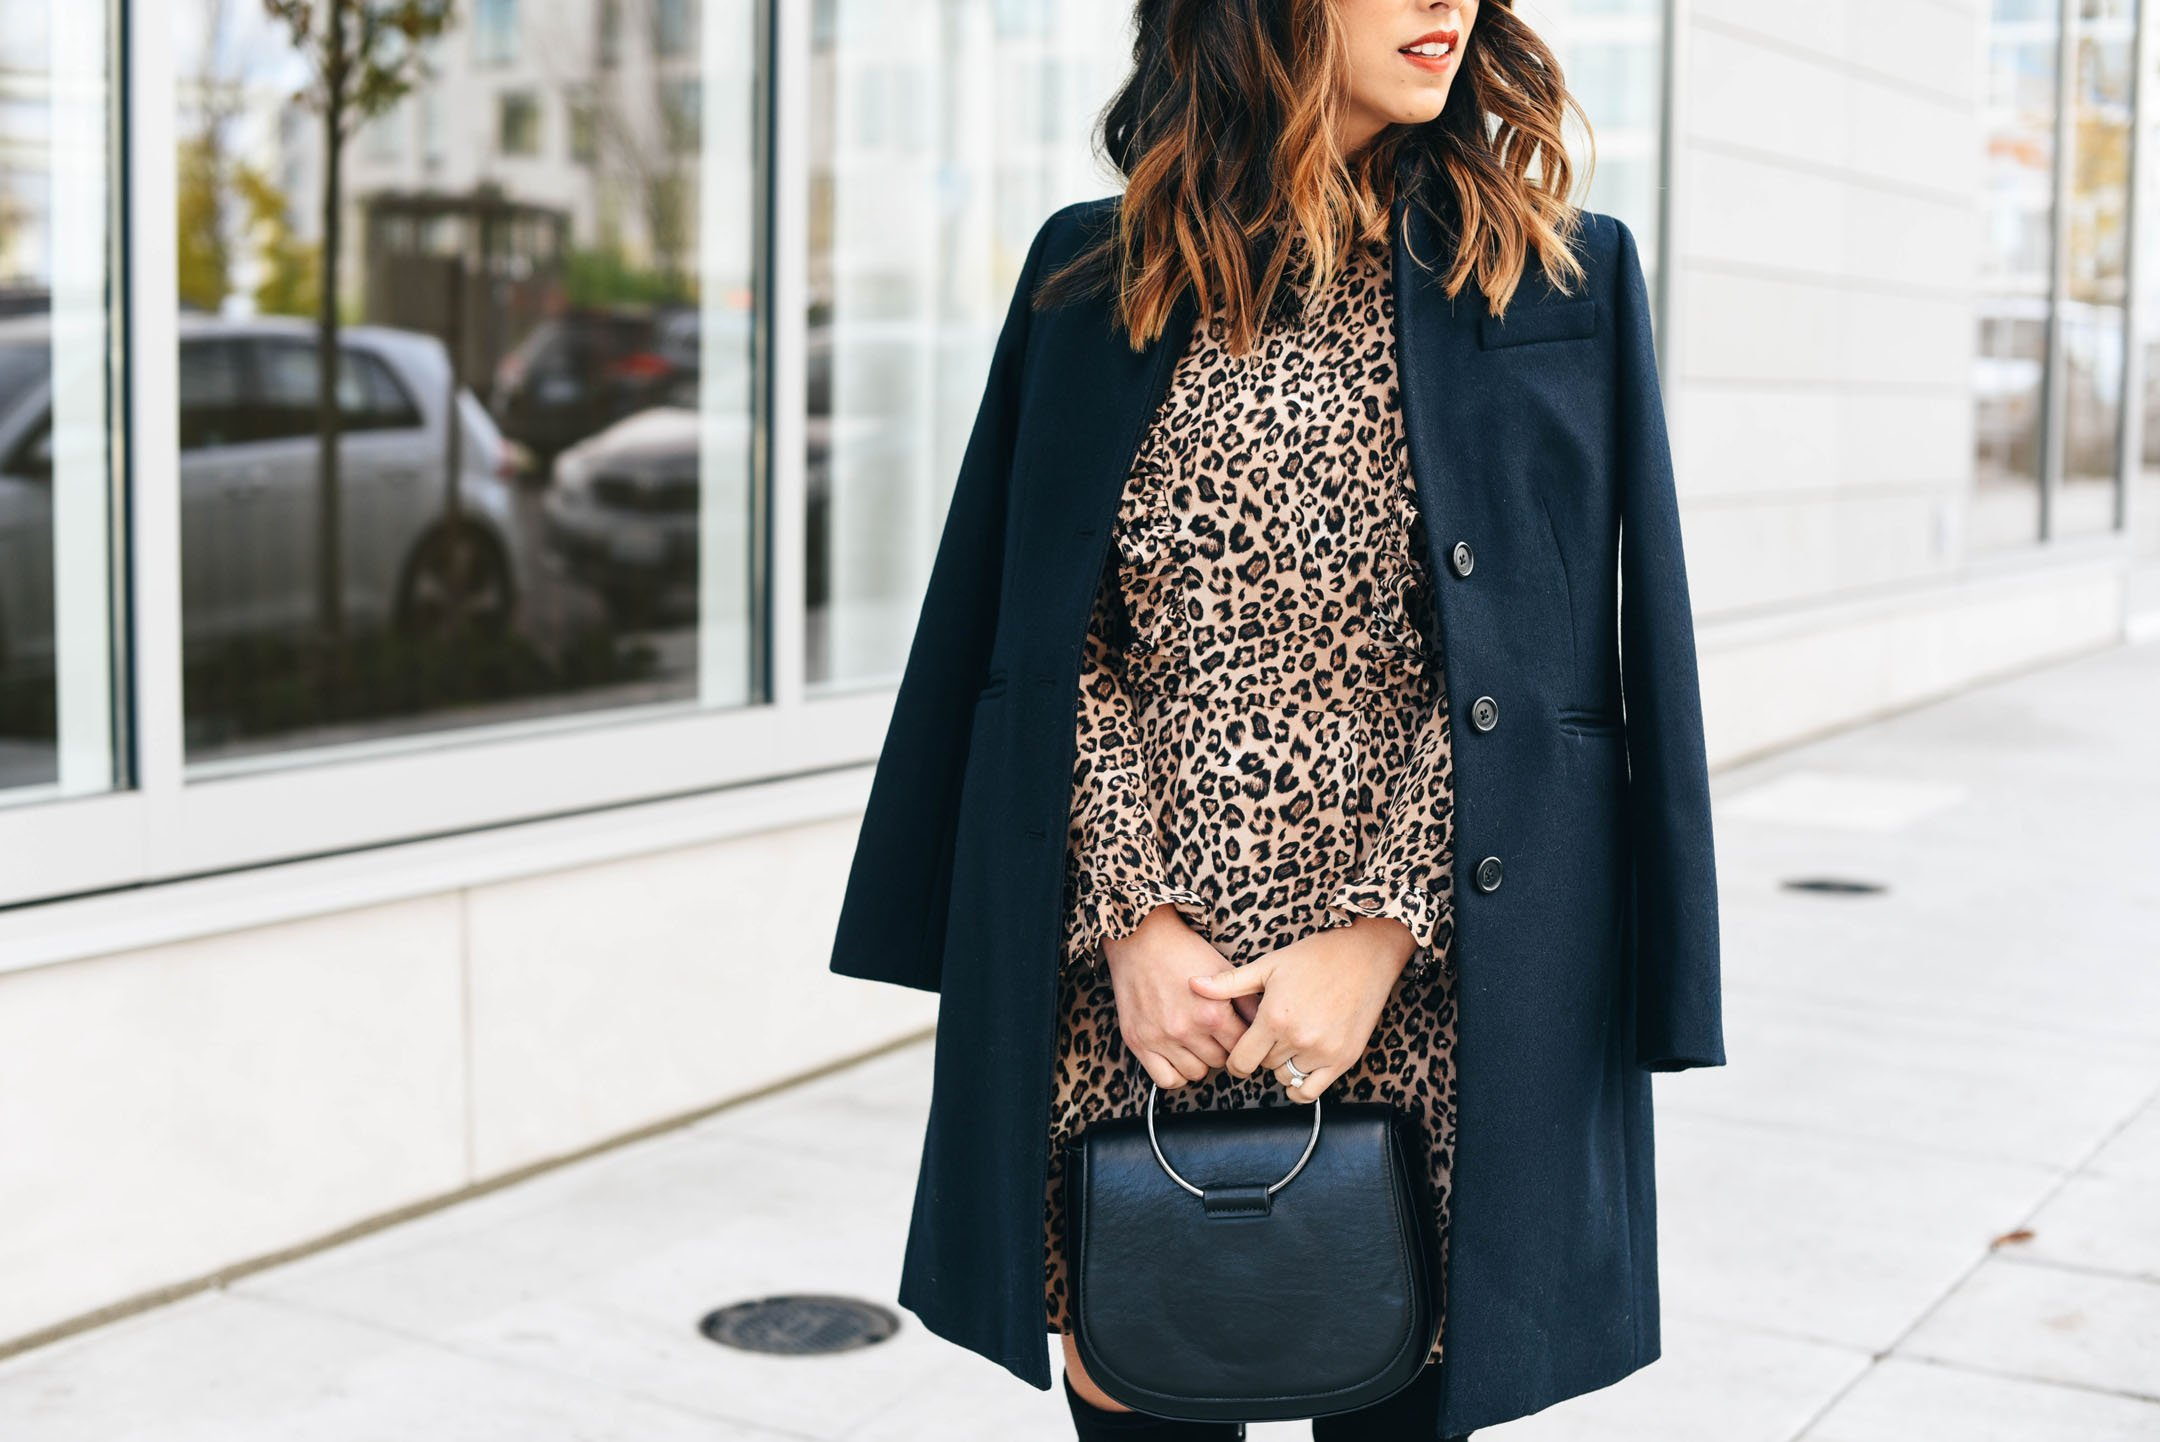 crystalin-marie-wearing-topshop-leopard-dress